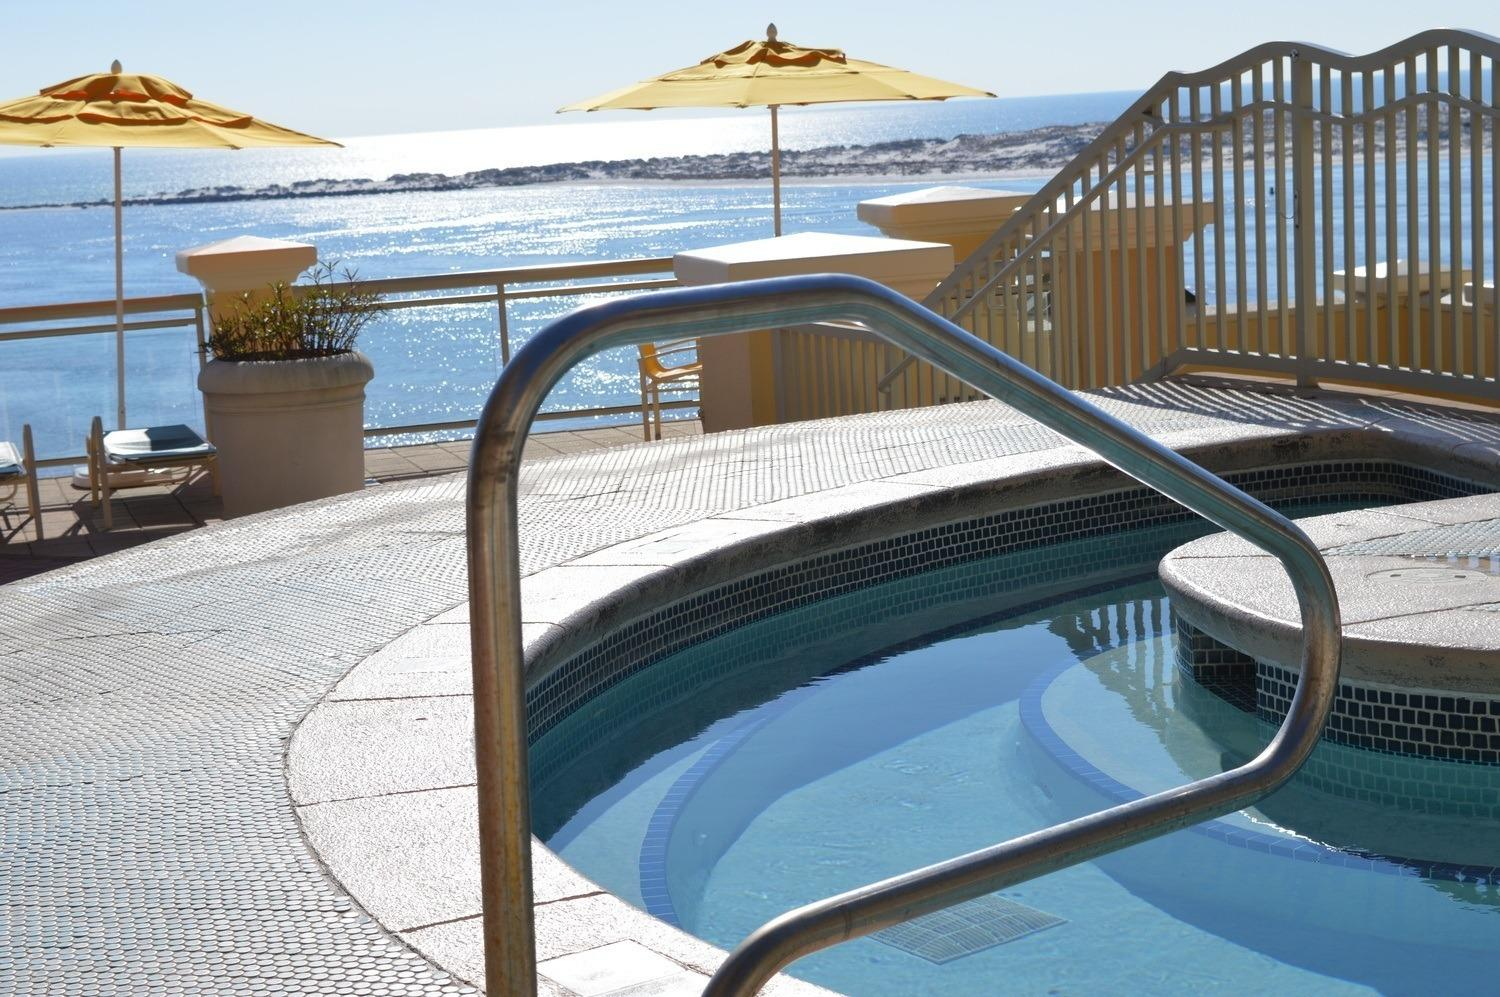 Hot Tub on the Pool Deck